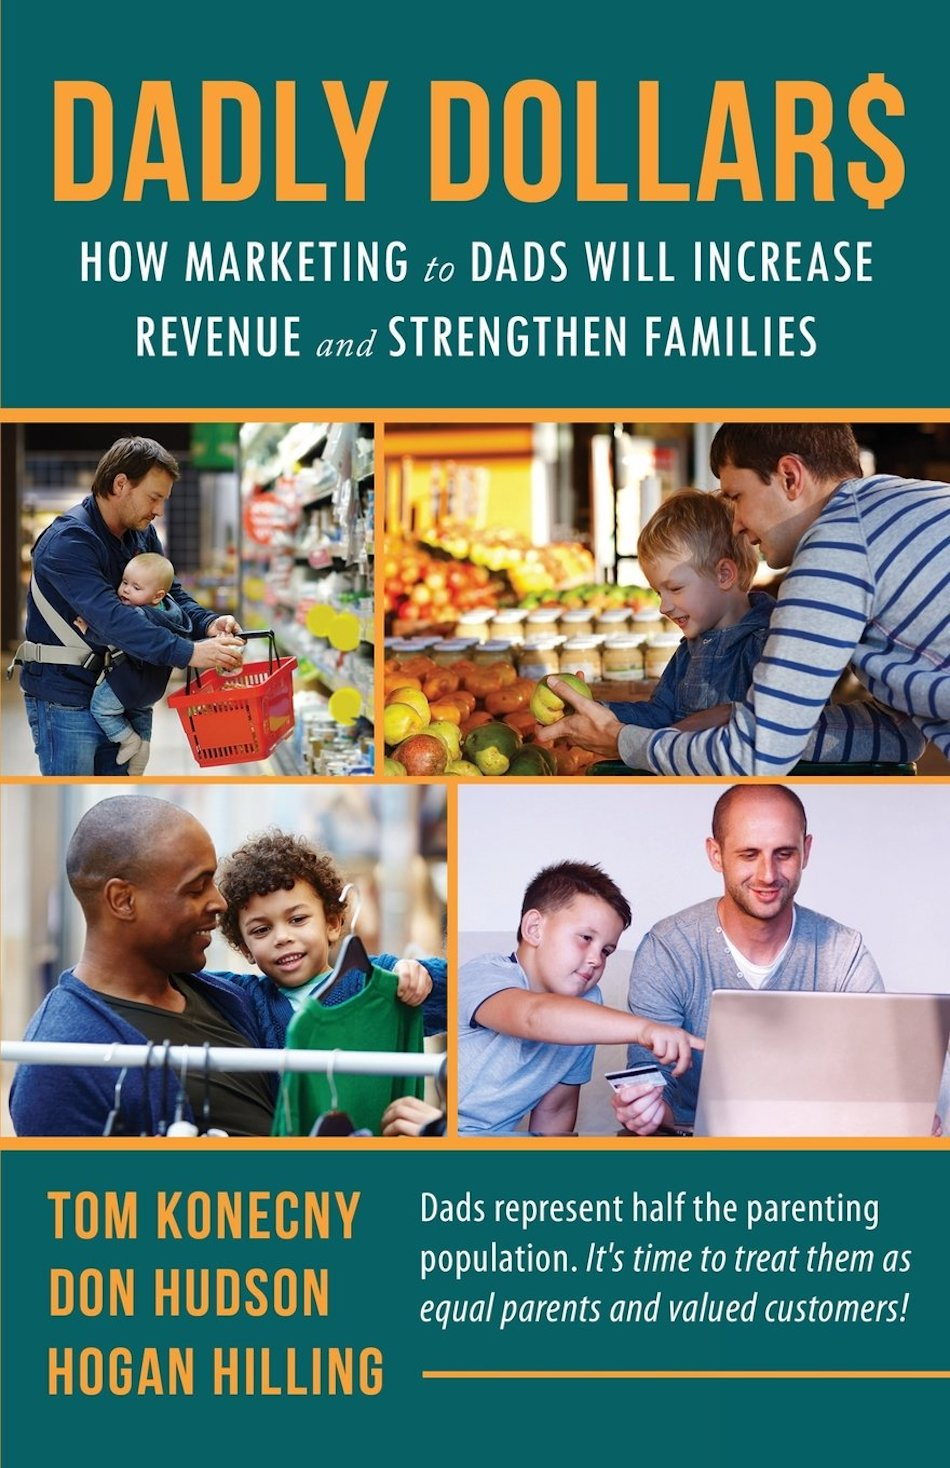 DADLY Dollar$: How Marketing to Dads Will Increase Revenue and Strengthen Families